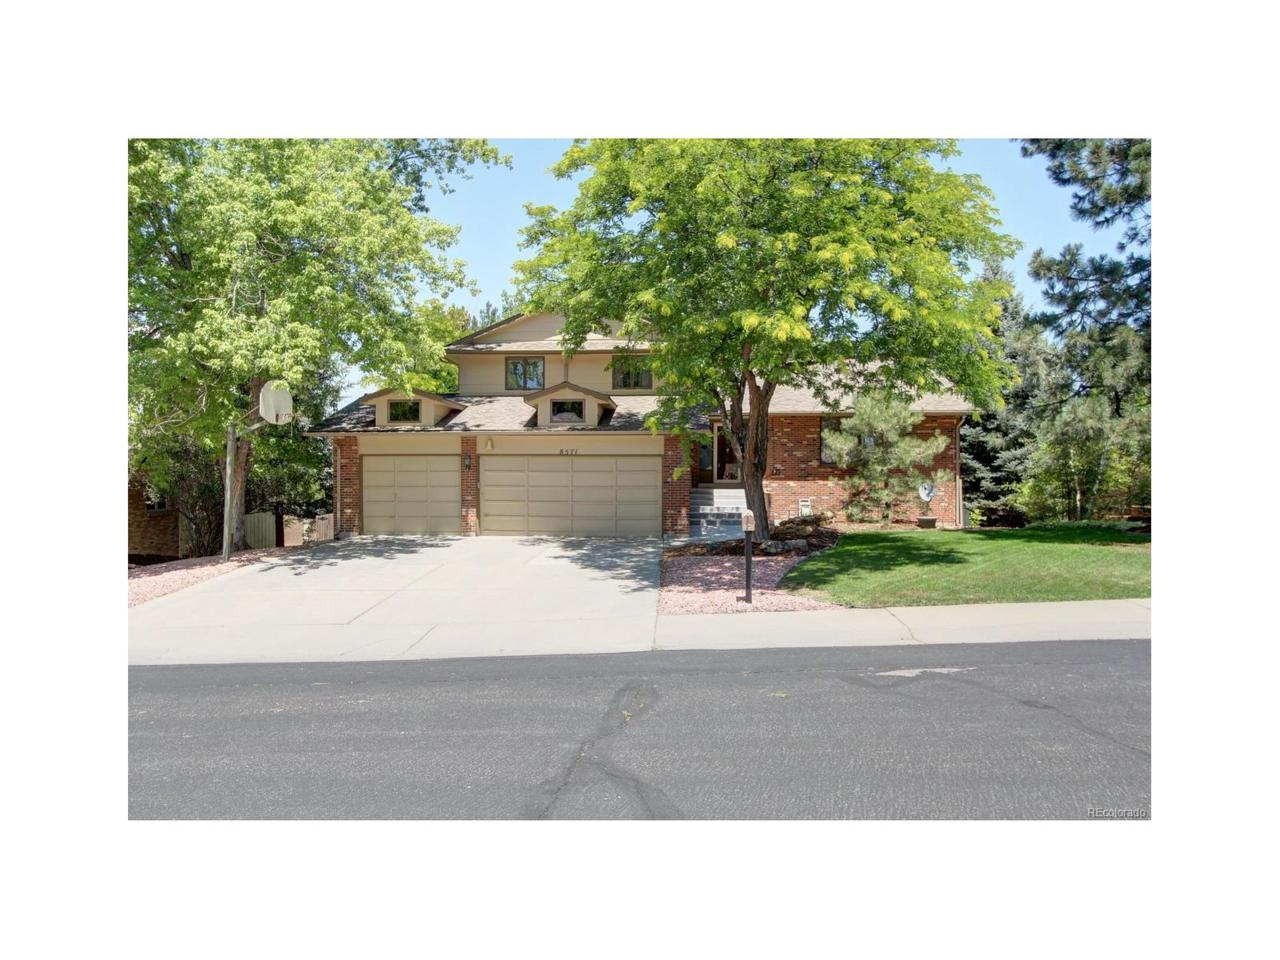 8571 W 71st Circle, Arvada, CO 80004 (MLS #3815723) :: 8z Real Estate